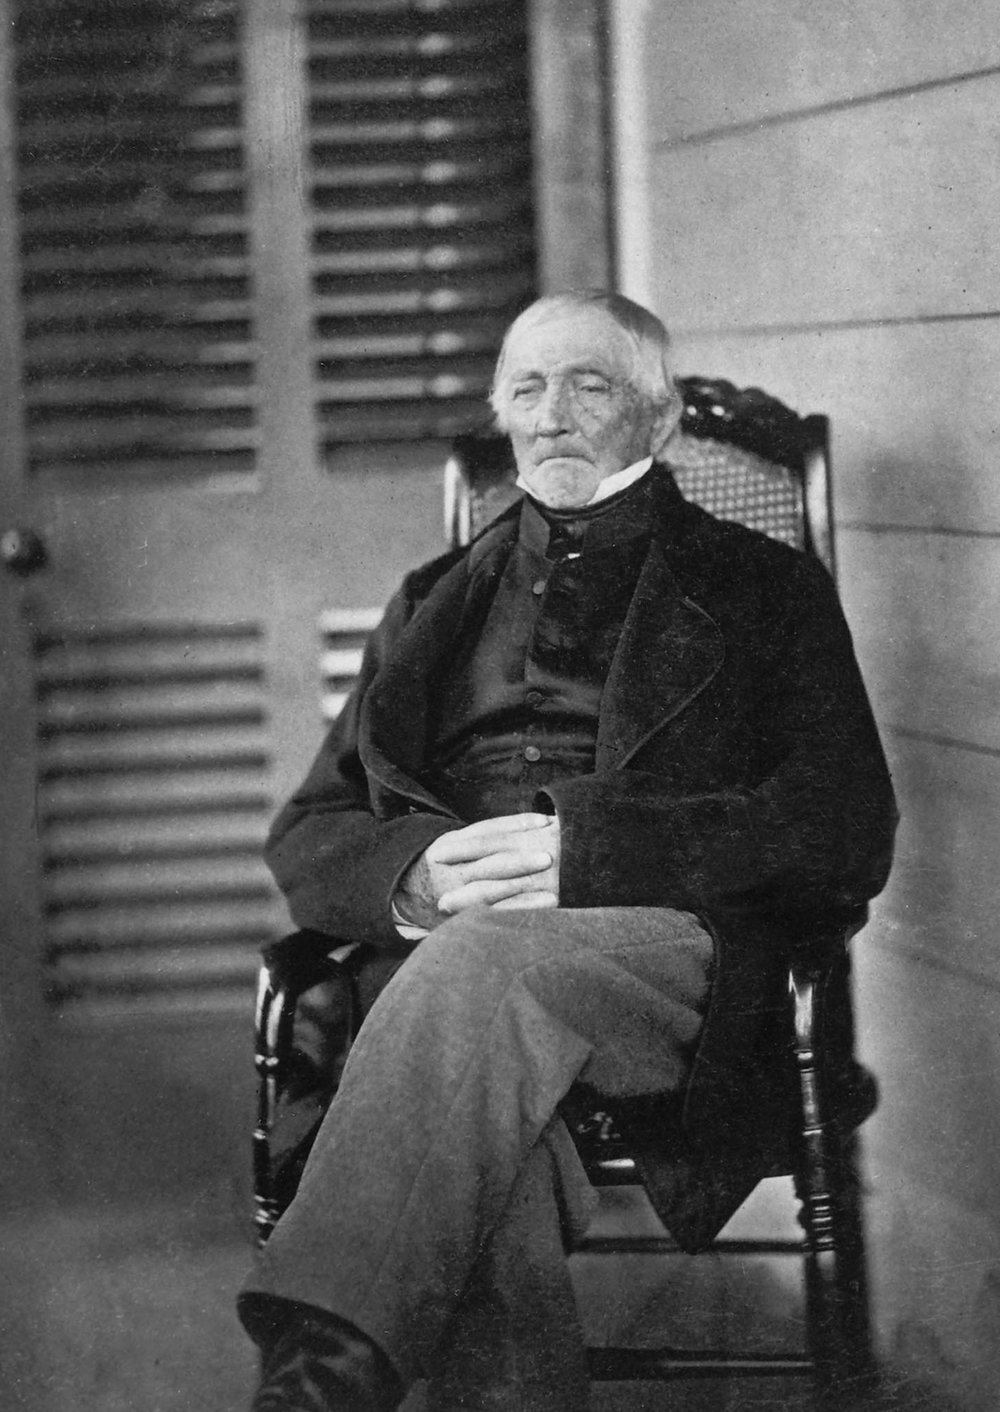 Solomon Mead. He died in 1870 at the age of 91.